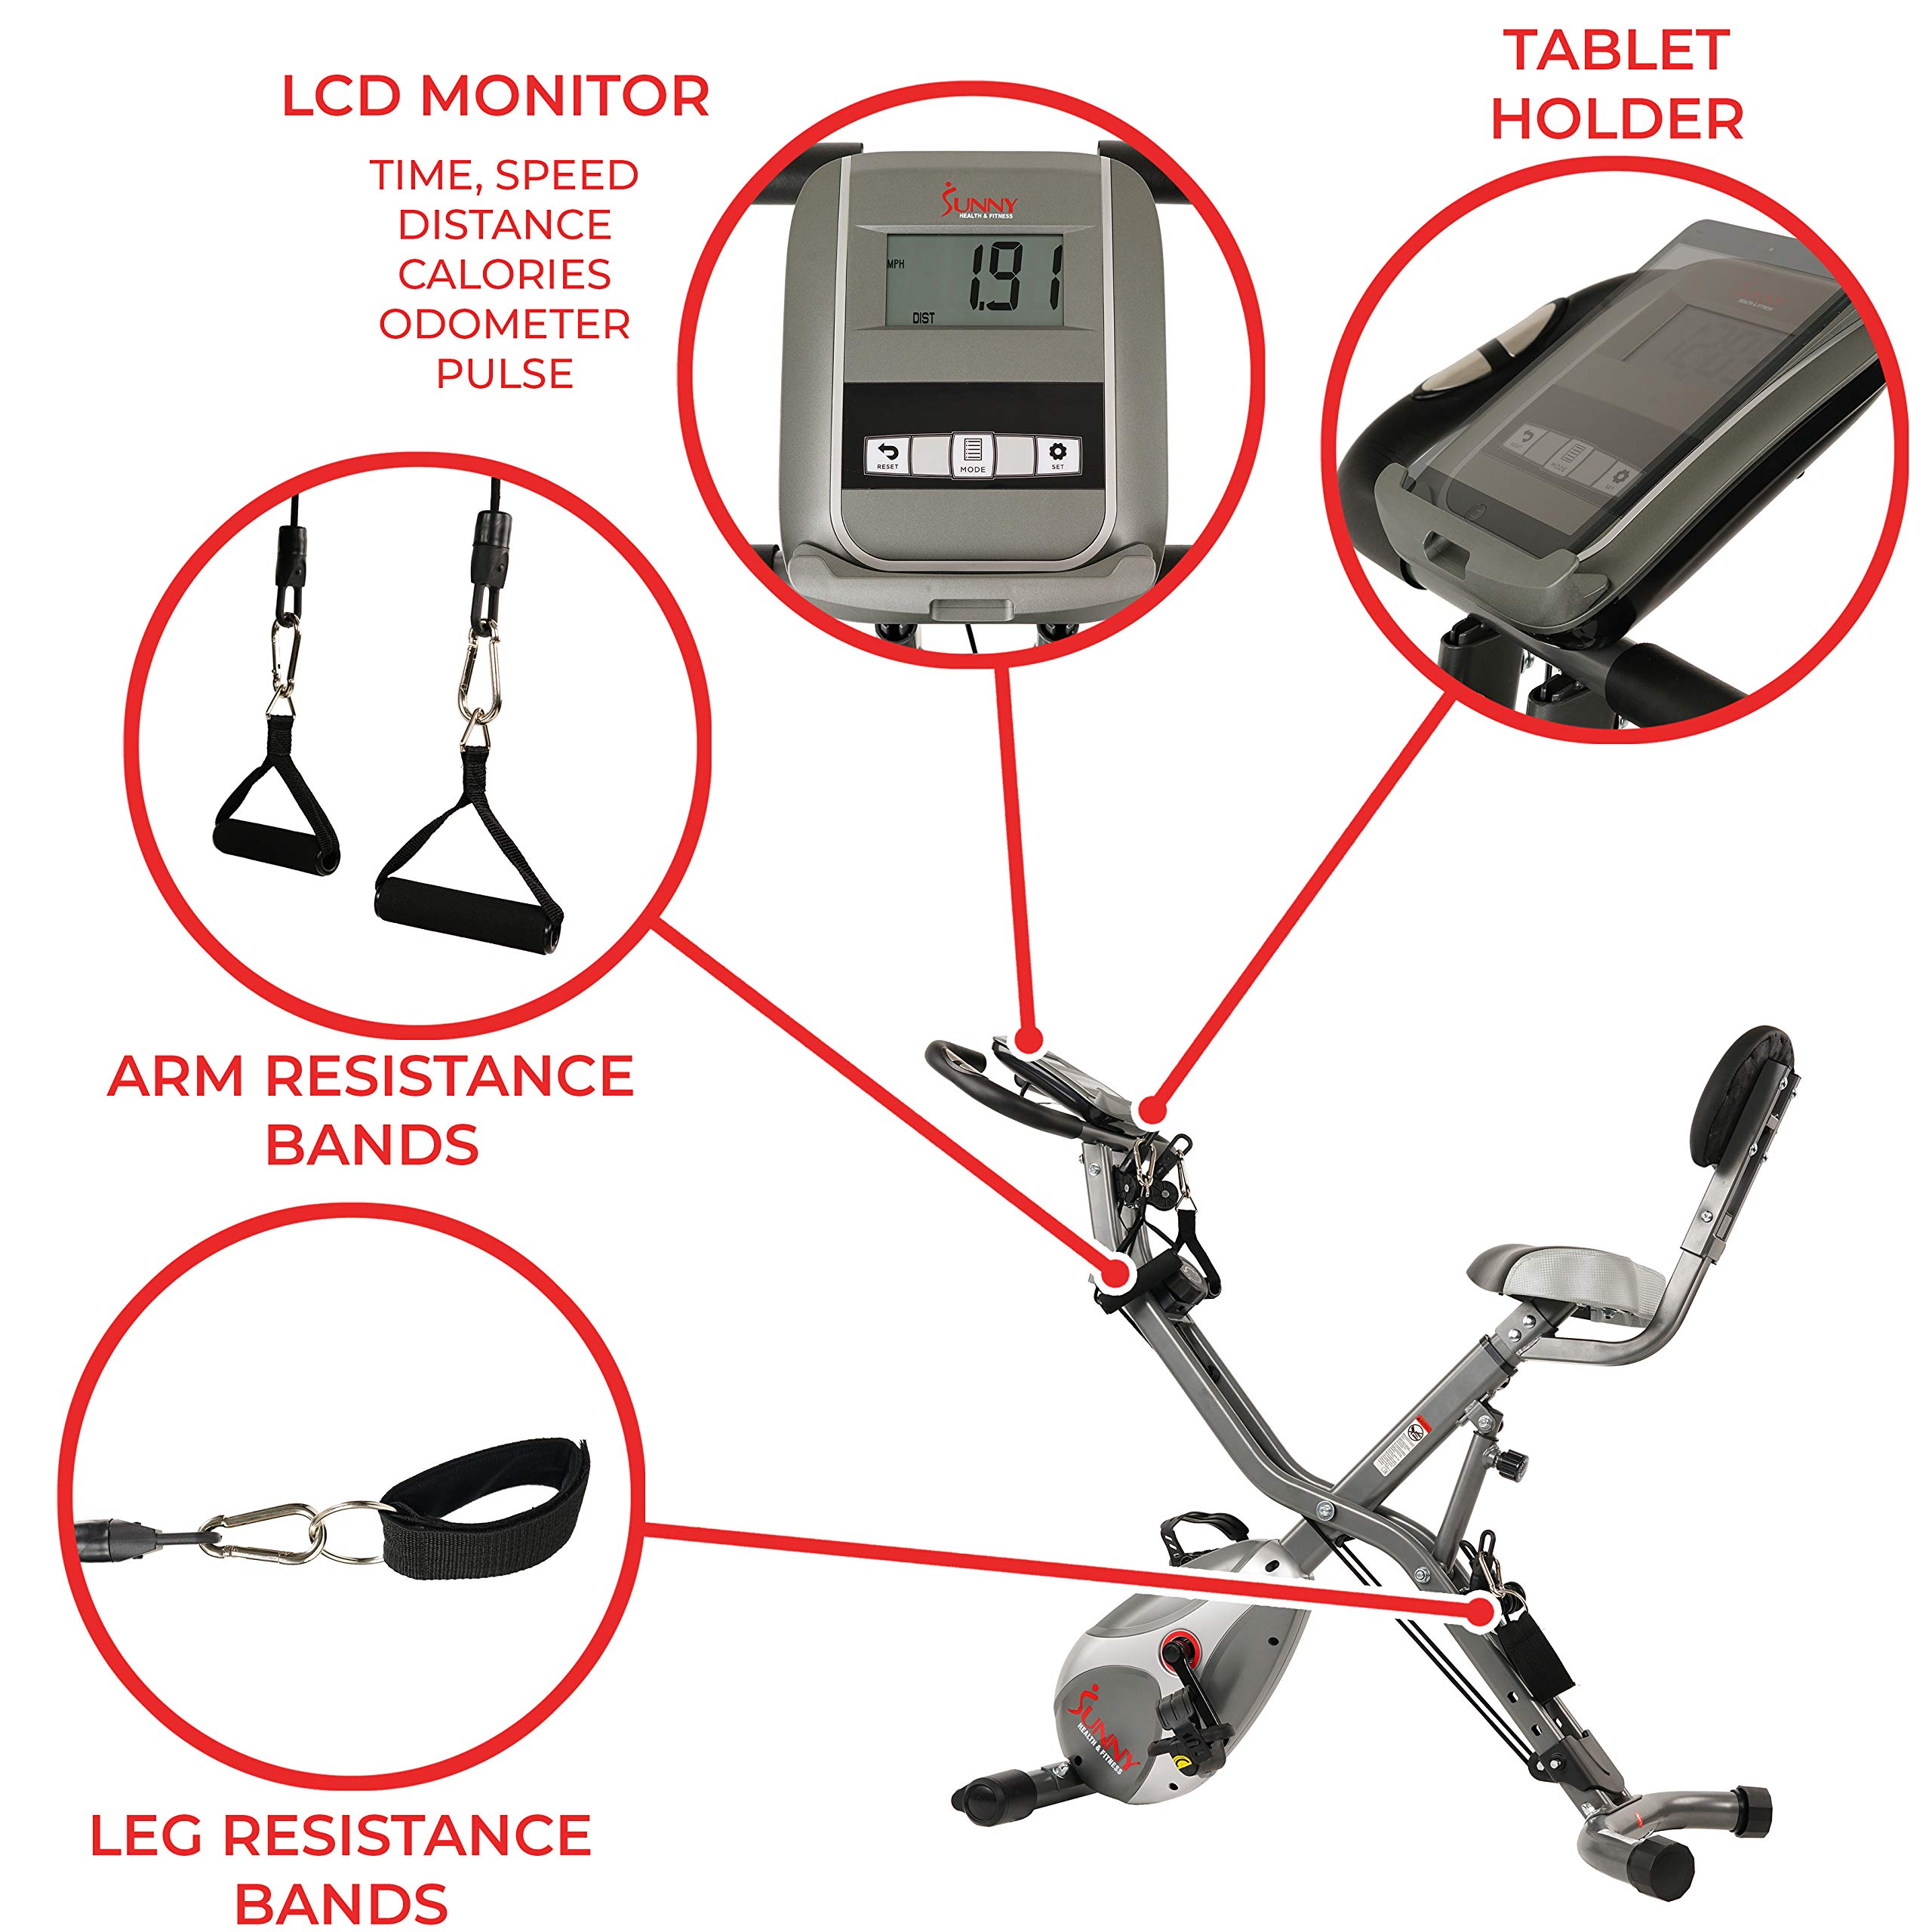 Sunny Health & Fitness Foldable Semi Recumbent Magnetic Upright Exercise Bike w/Pulse Rate Monitoring, Adjustable Arm Resistance Bands and LCD Monitor - SF-B2710 by Sunny Health & Fitness (Image #4)